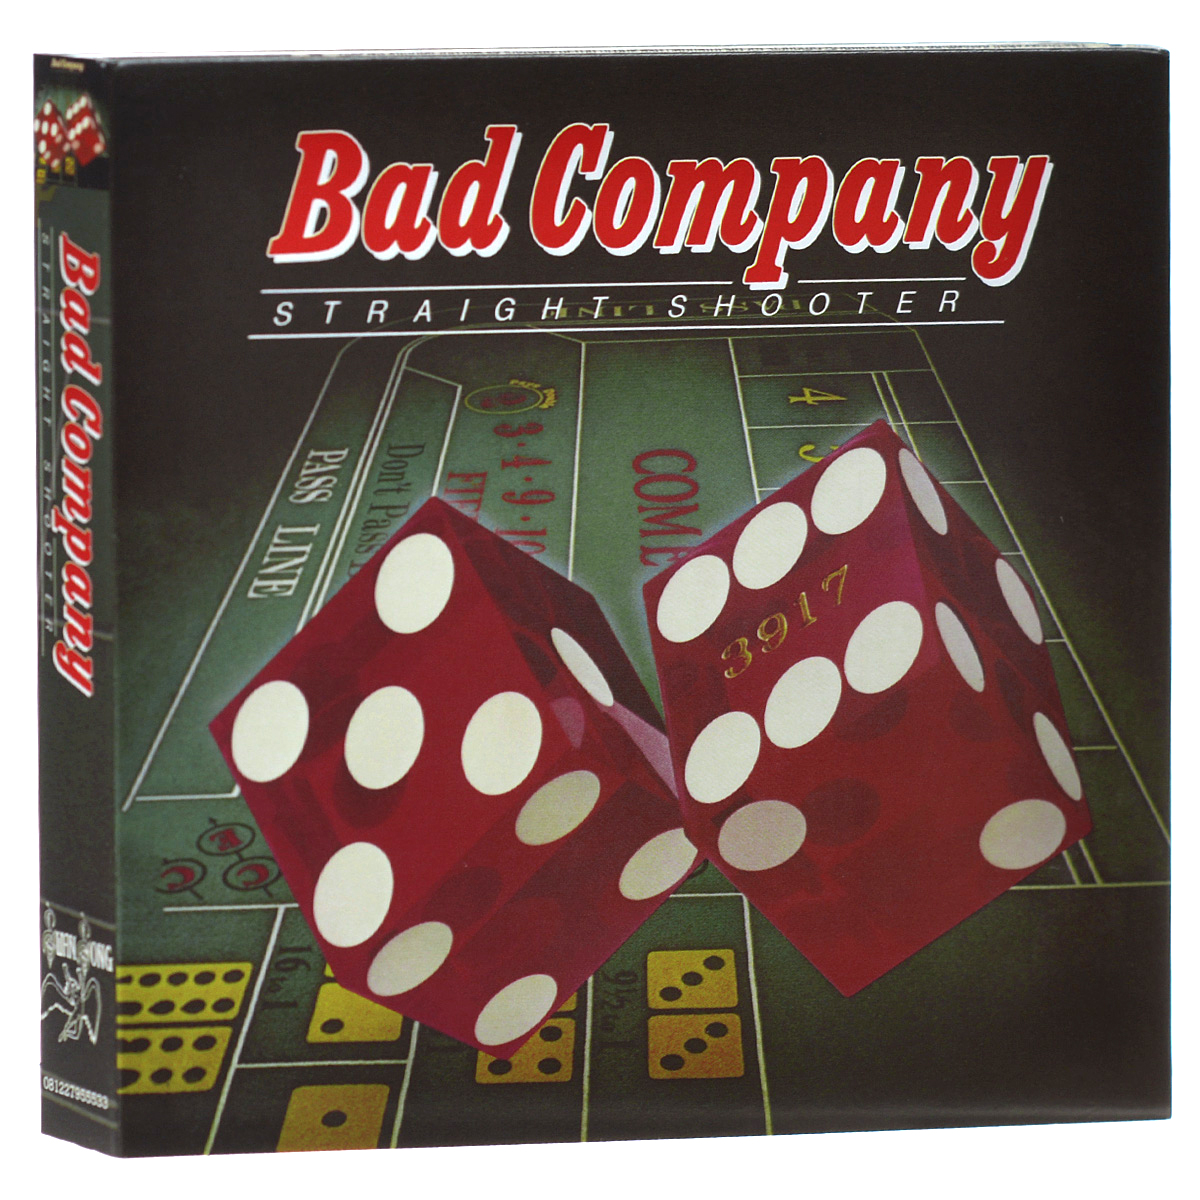 Bad Company Bad Company. Straight Shooter. Deluxe Edition (2 CD) zenfone 2 deluxe special edition